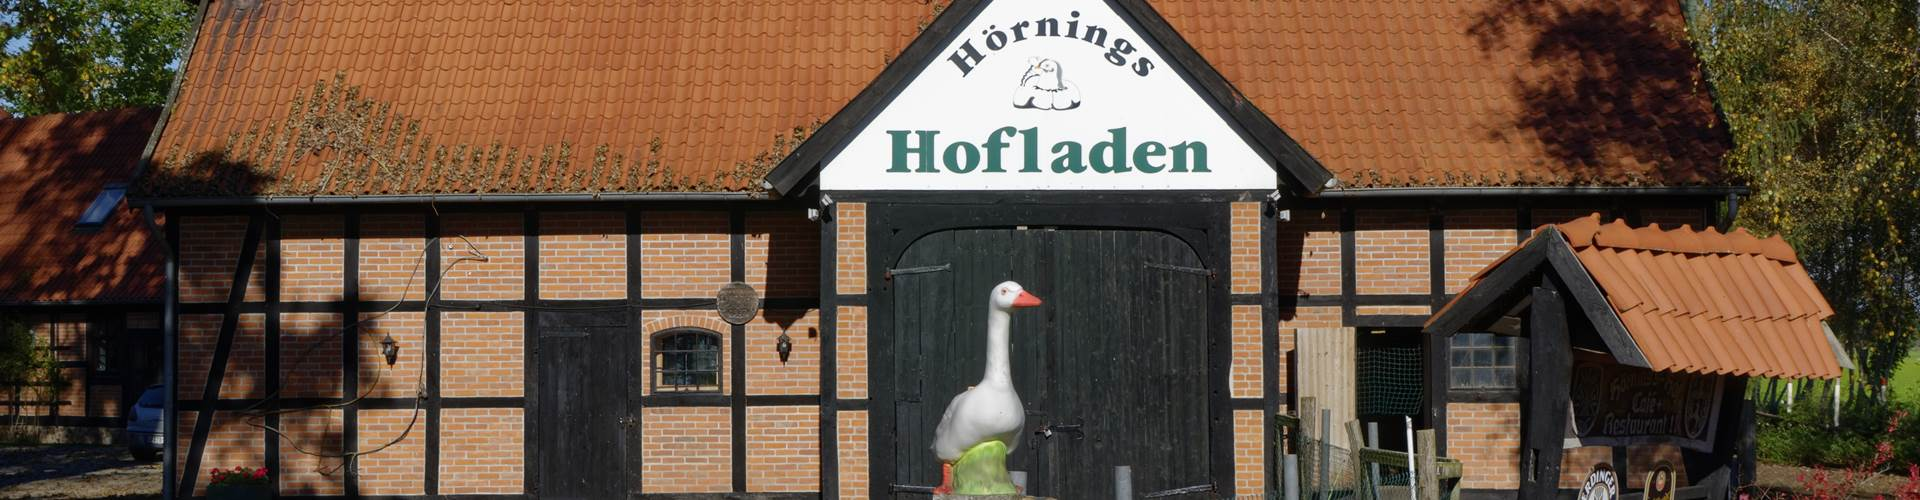 Hörnings Hofladen